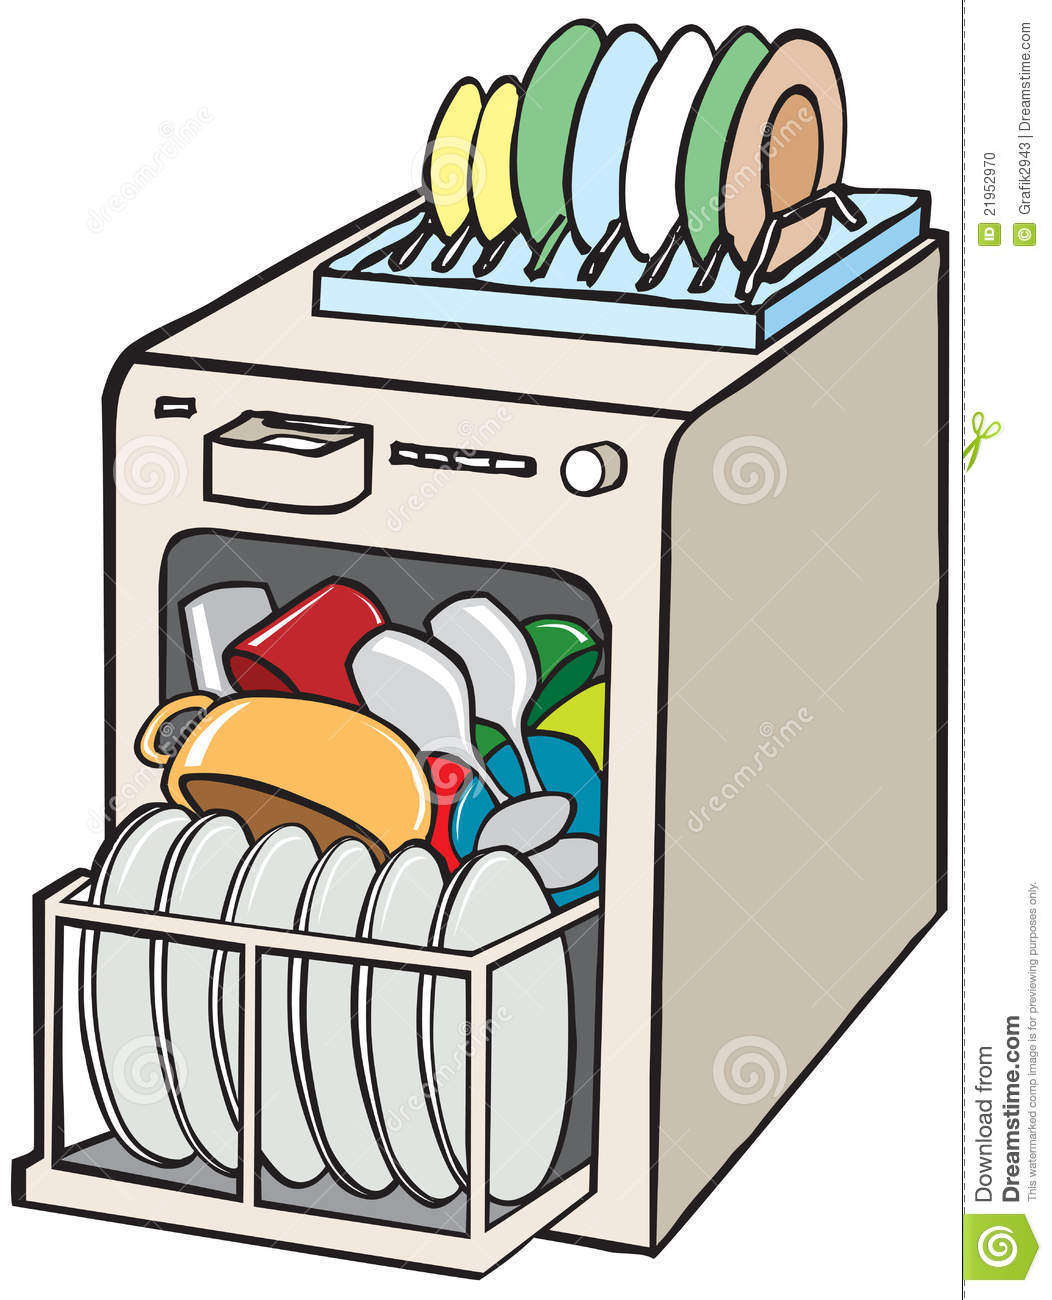 clip art library Dishwasher clipart. Collection of free download.